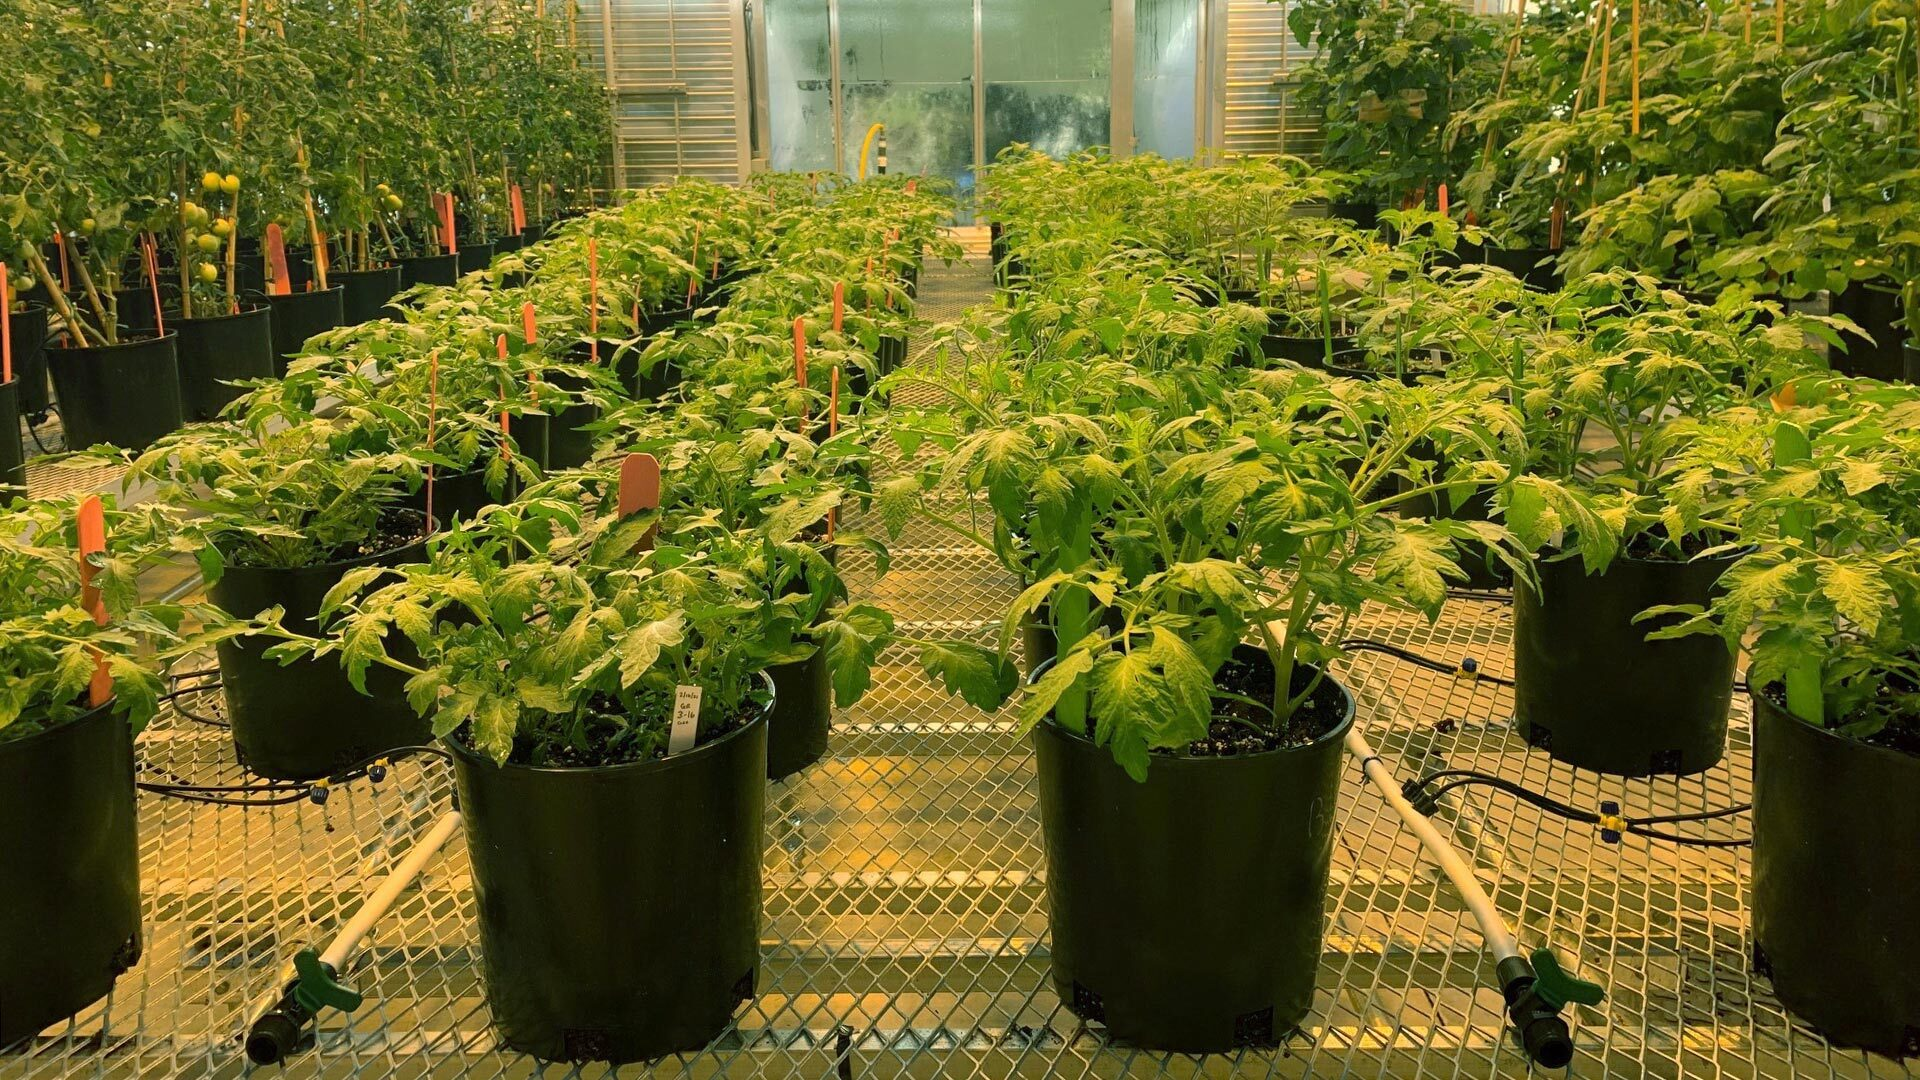 photo of the inside of the CSHL greenhouse with tomato plants